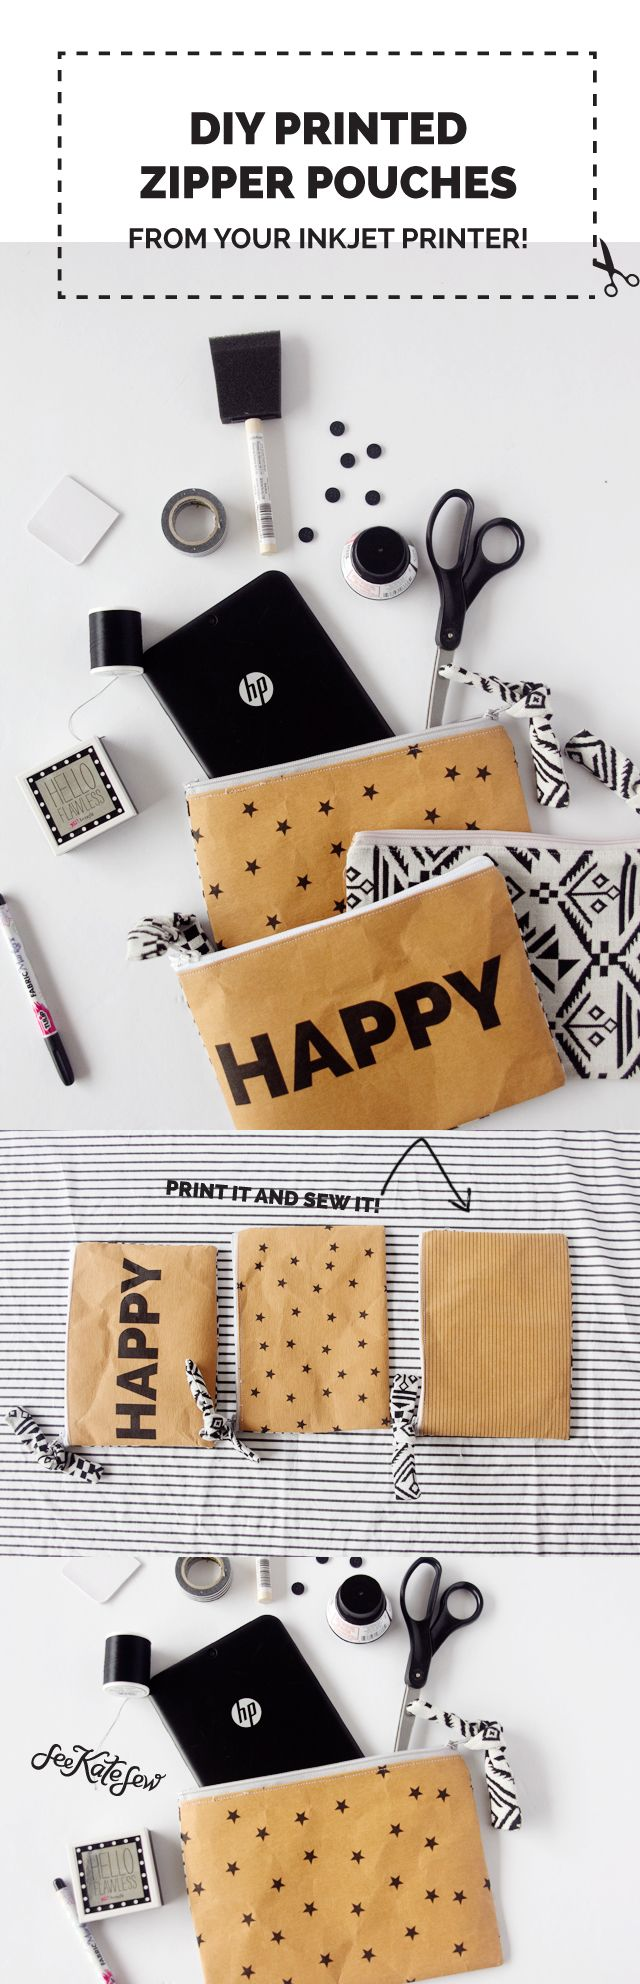 "Yesterday I posted about 5 secrets to doing it all, including sneaking away to my ""happy place."" I made these printed pouches to go along with that post! I made the HAPPY pouch to hold my tablet but it was so fun I made a few more. Today I'm sharing the tutorial for these pouches! …"